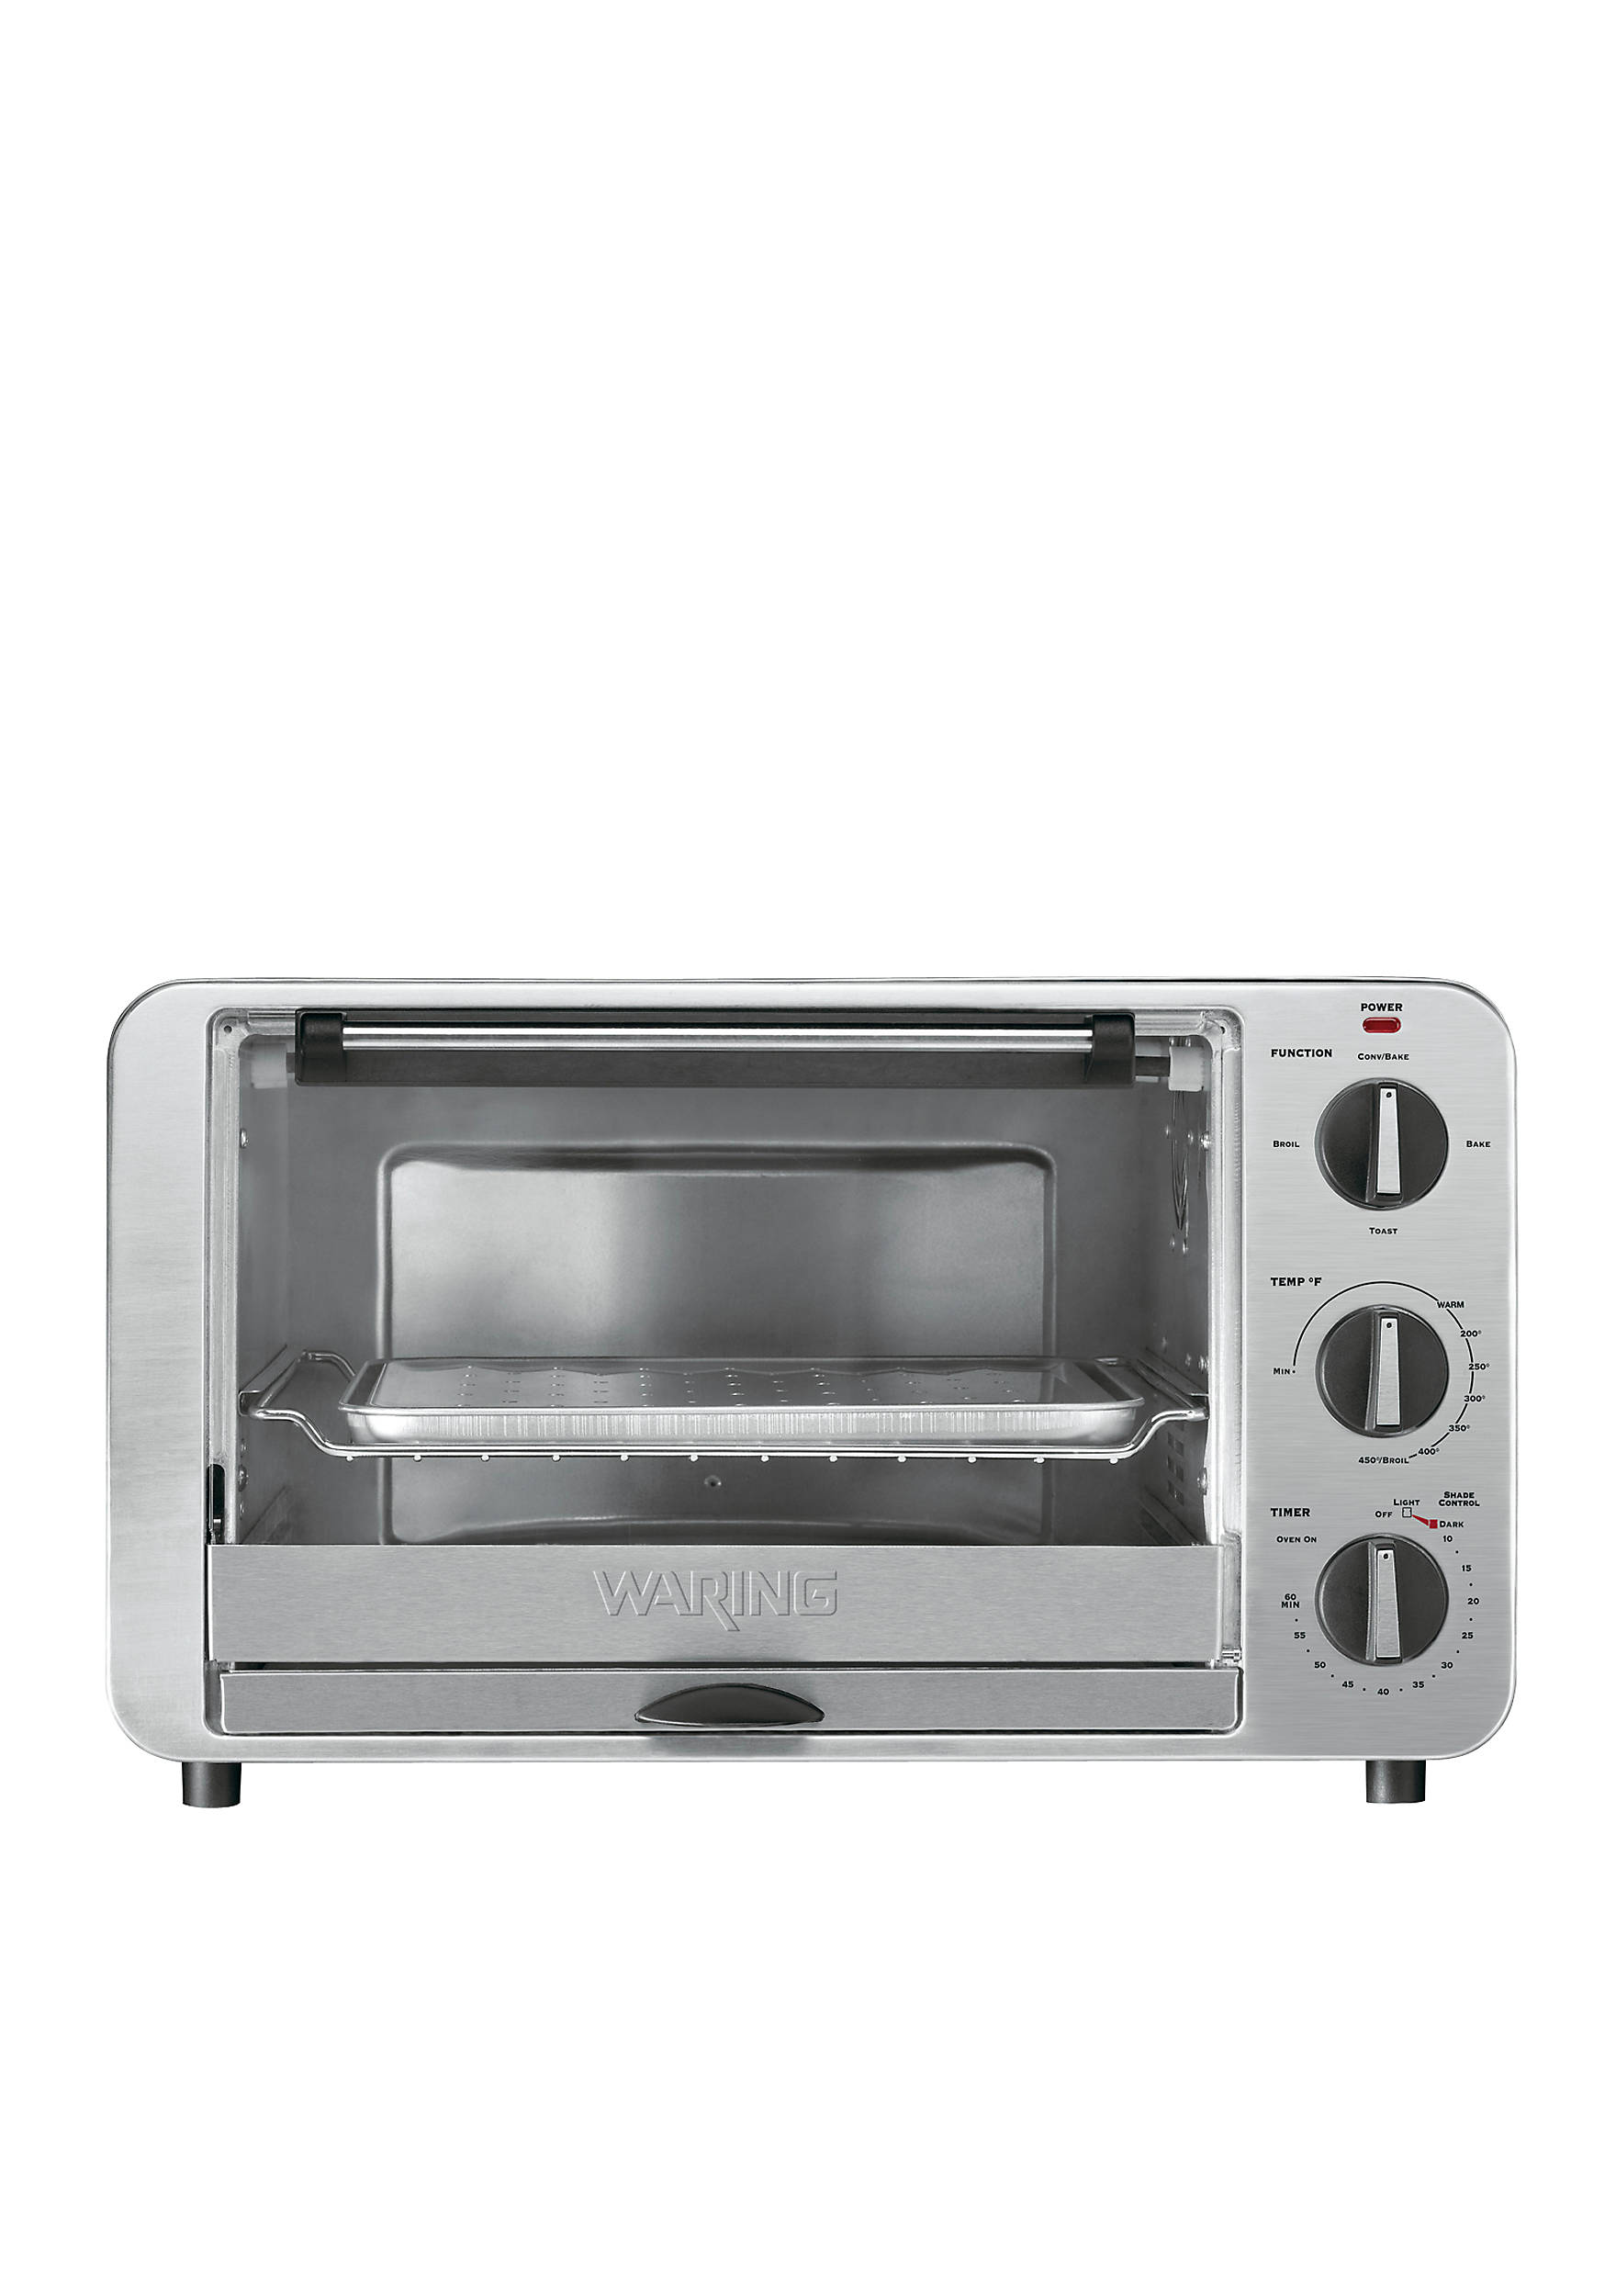 small toasters convection of oven walmart general fresh electric toaster waring ovens